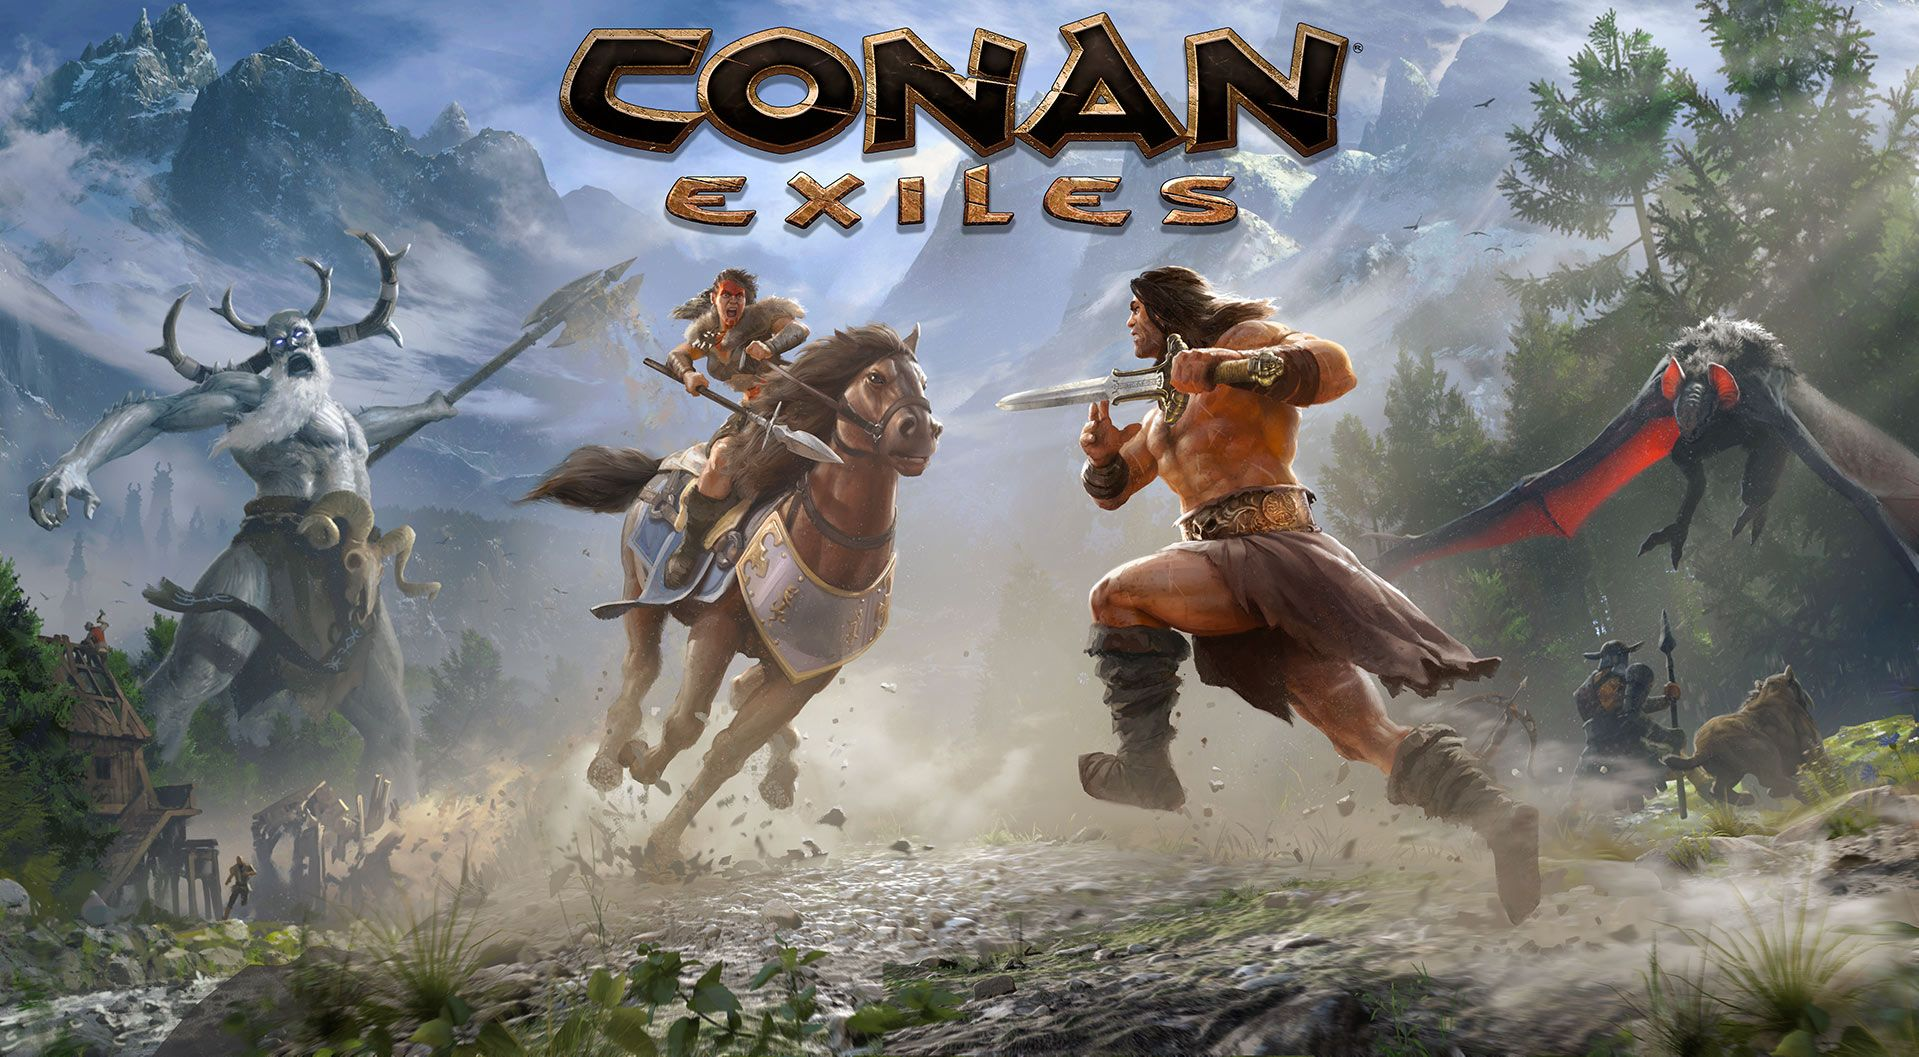 Our Latest Featured Hub is Conan Exiles!